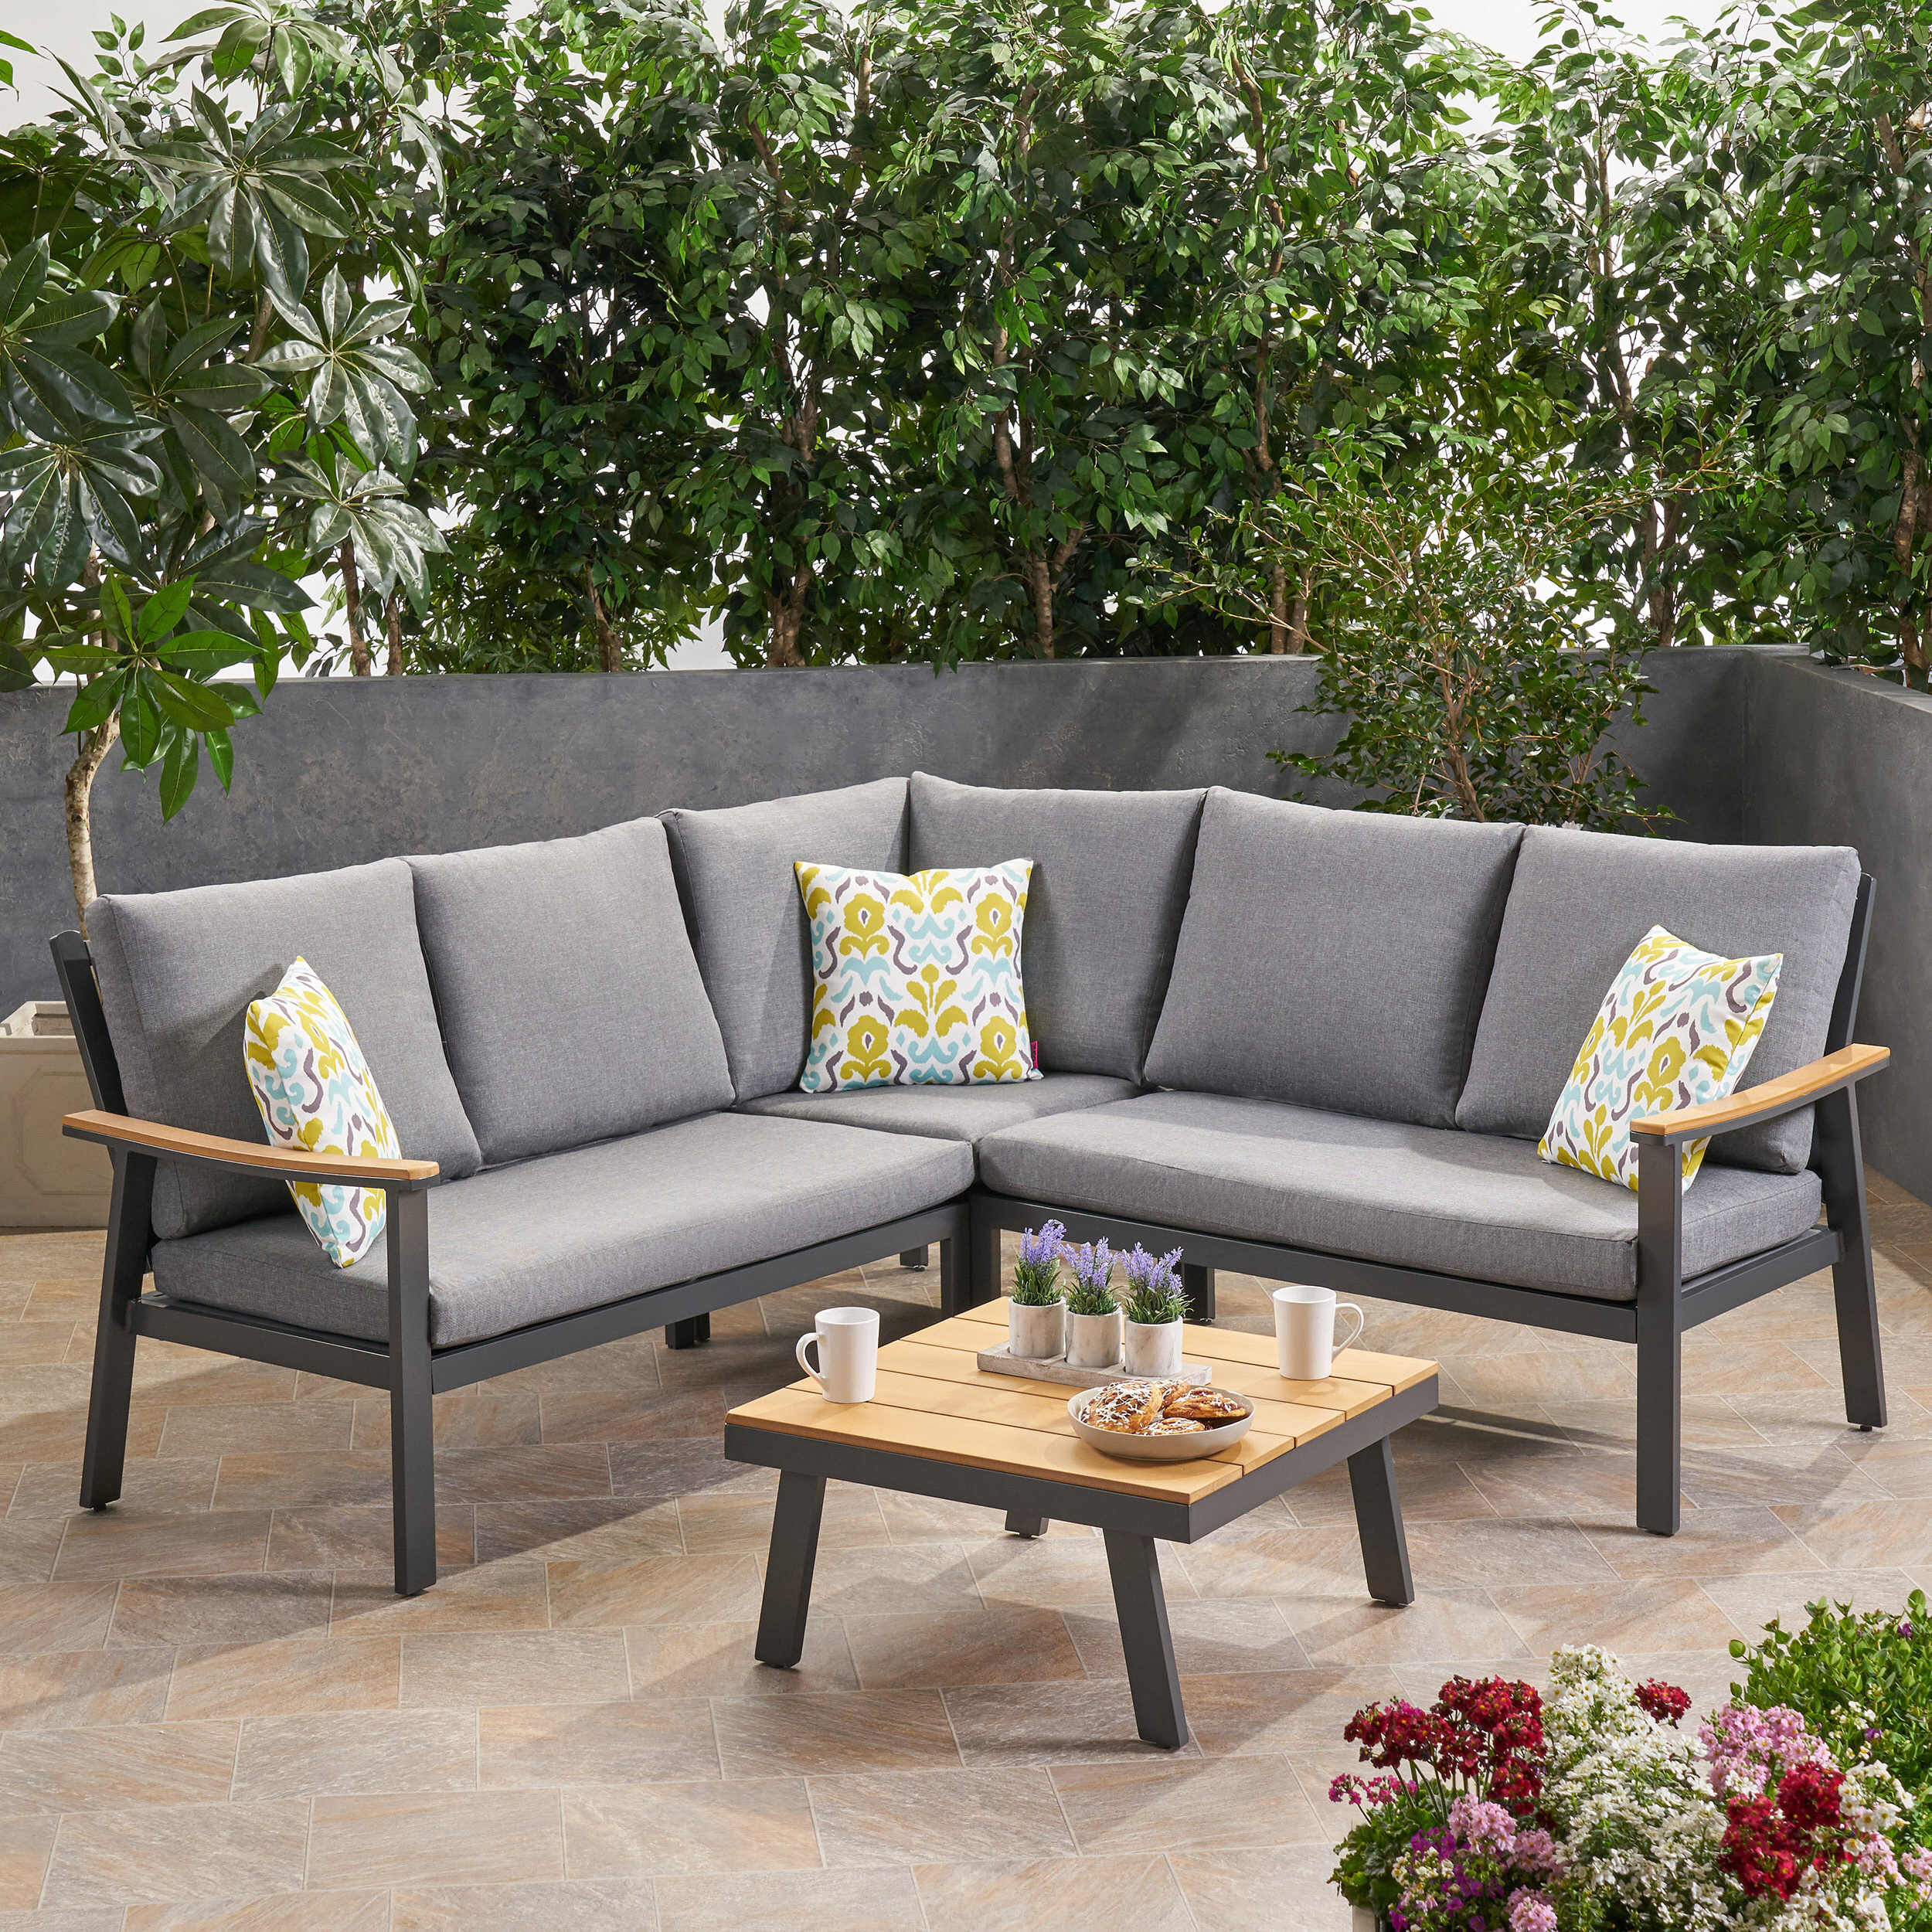 Most Recent Olinda 3 Piece Sectionals Seating Group With Cushions Pertaining To Ivy Bronx Arocho Outdoor 4 Piece Sectional Seating Group (View 13 of 25)